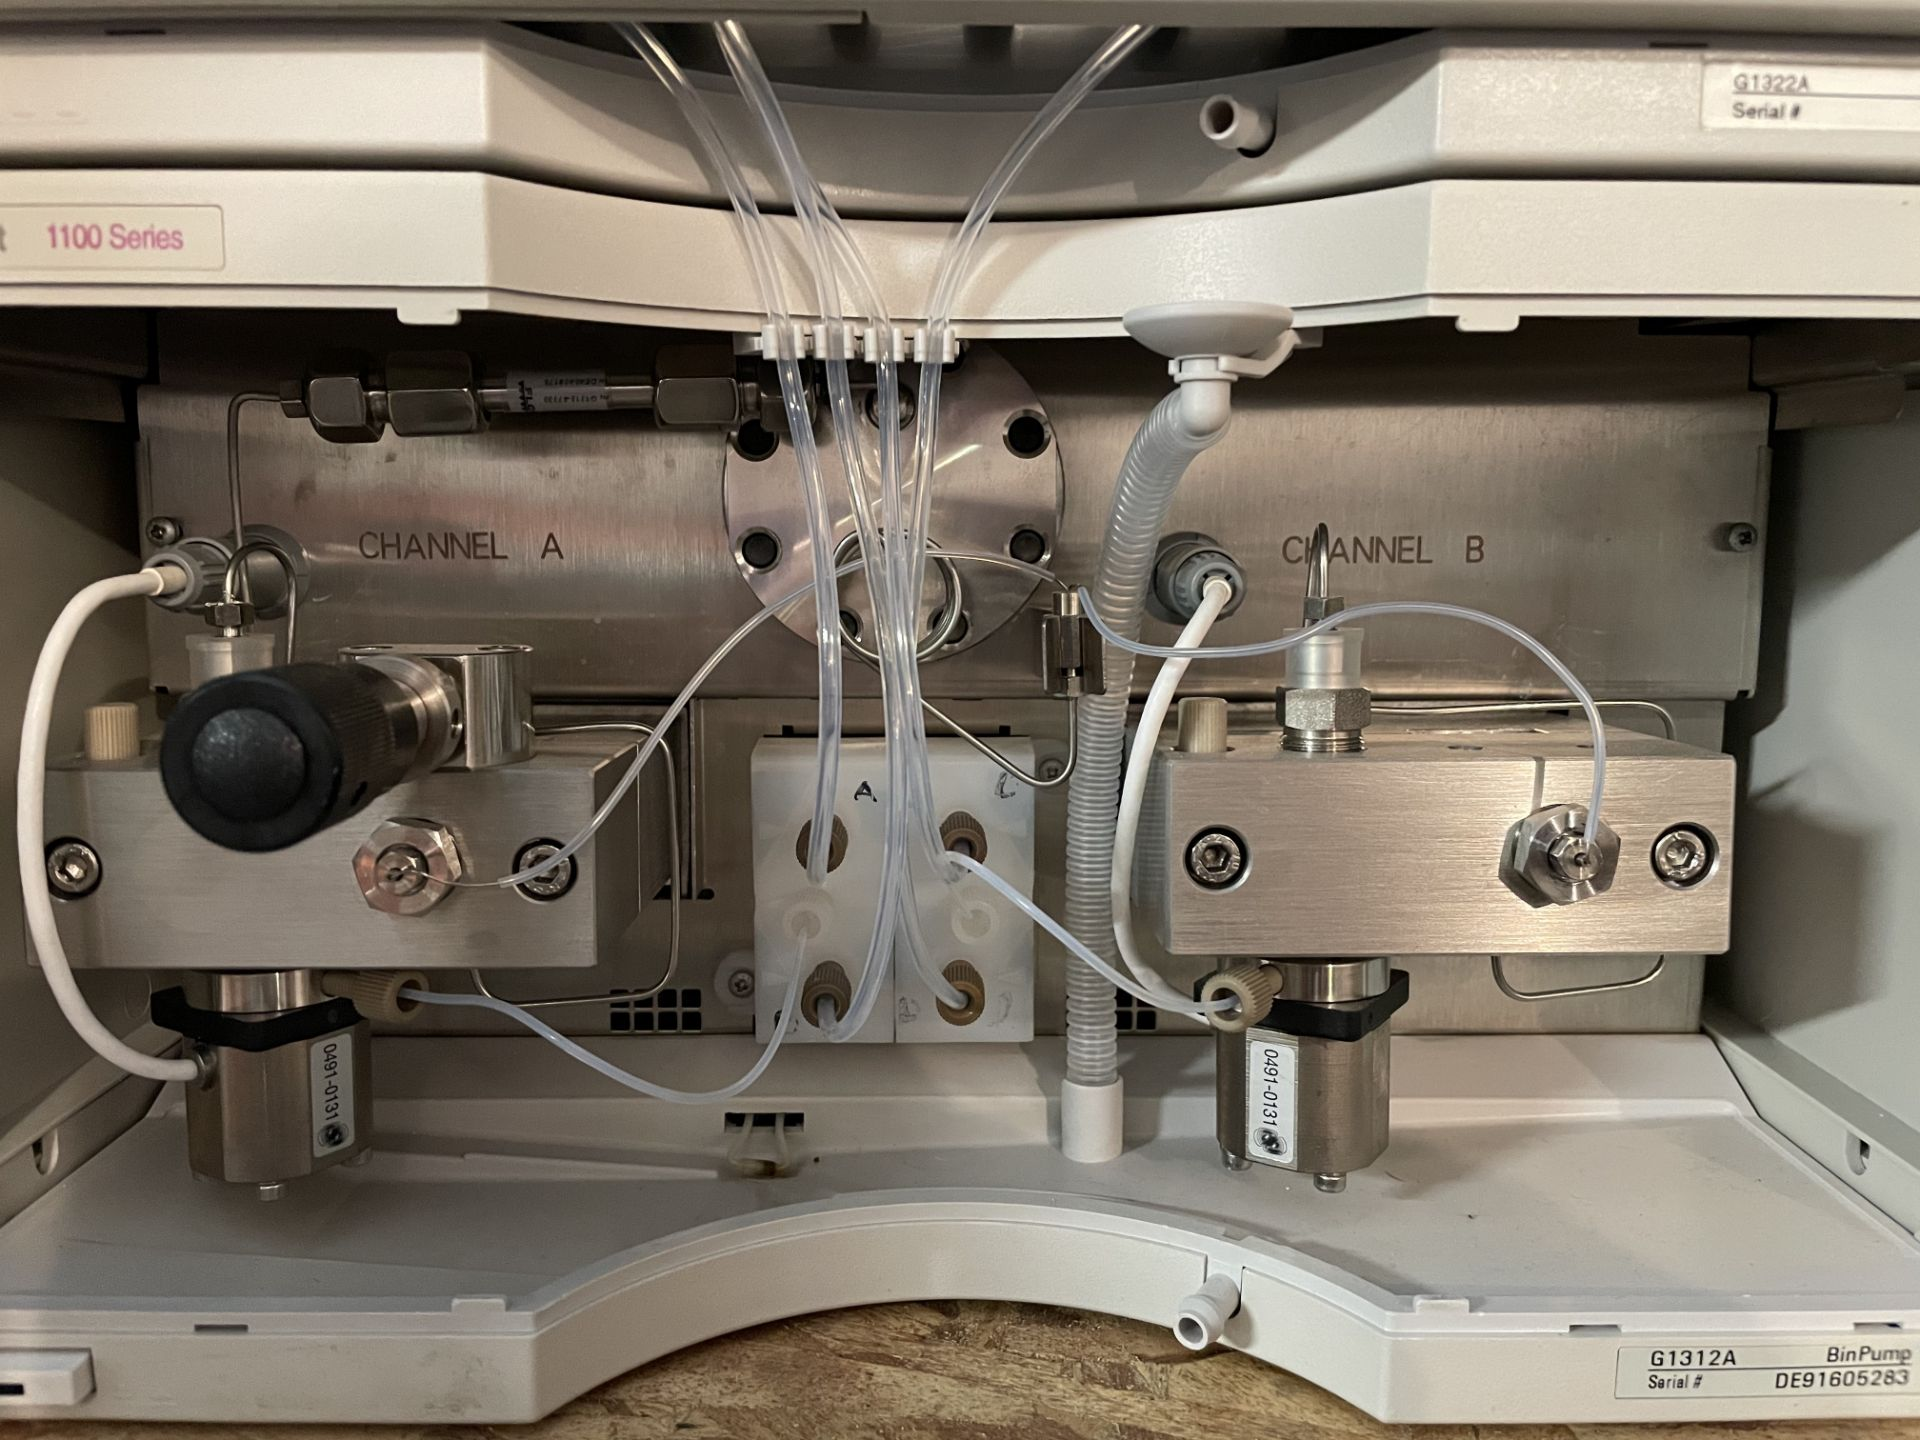 Used Agilent 1100 HPLC. Model 1100. Fully complete & functional cannabinoid potency testing system. - Image 5 of 22